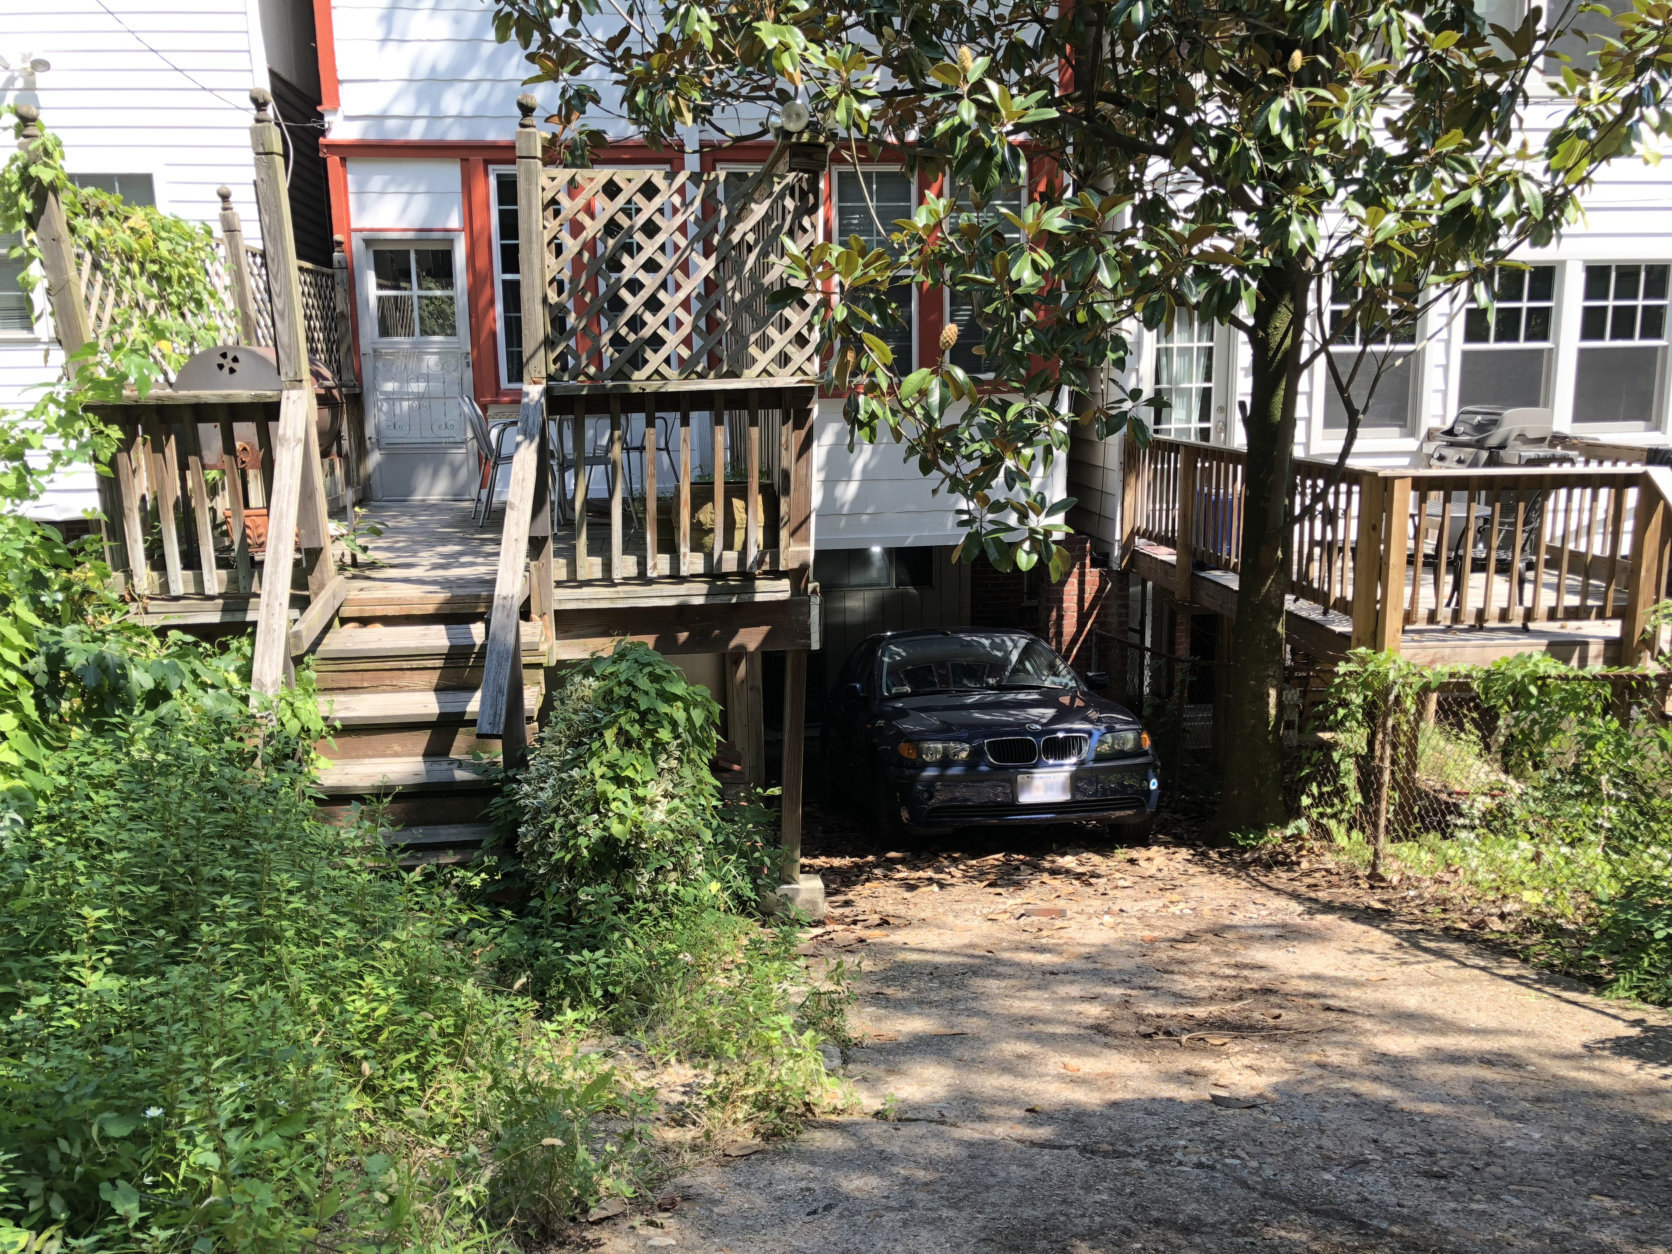 Outside a Glover Park home, the car that pinned a man who died still sits at the scene of the apparent accident. (WTOP/Kristi King)